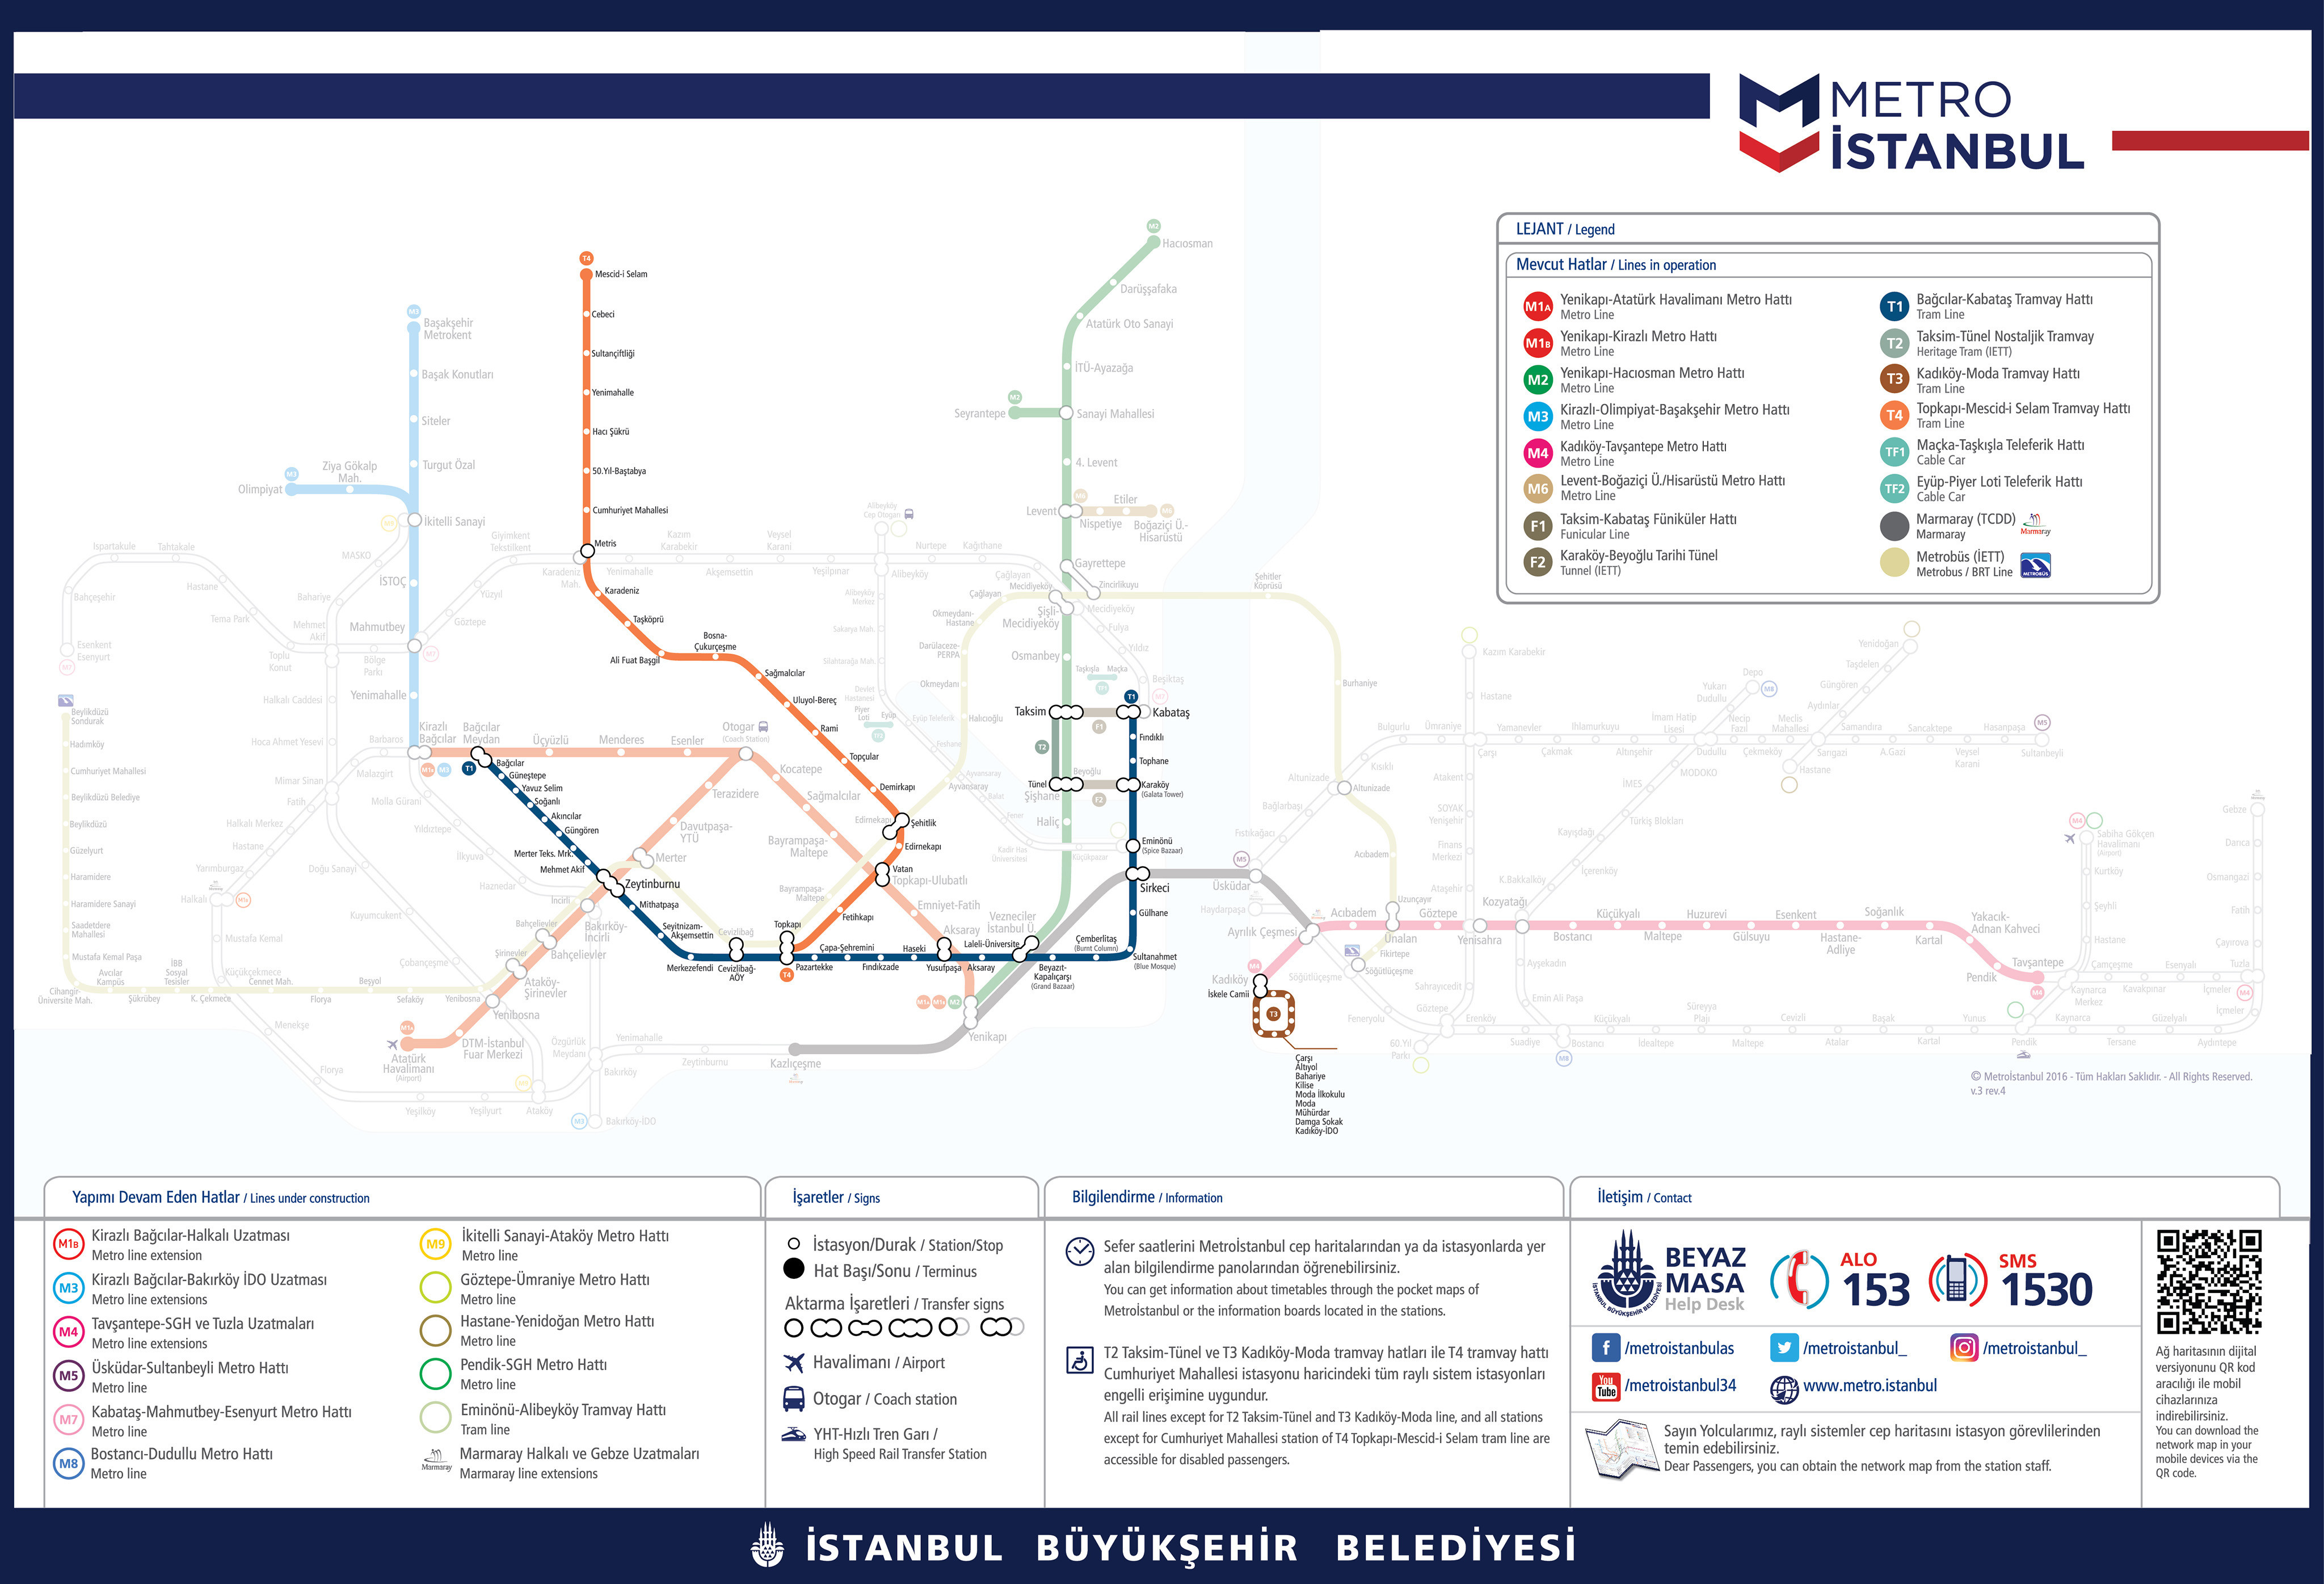 Istanbul Subway Map 2015.Istanbul Metro Map And Tram Map Pdf Files 2019 Istanbul Clues